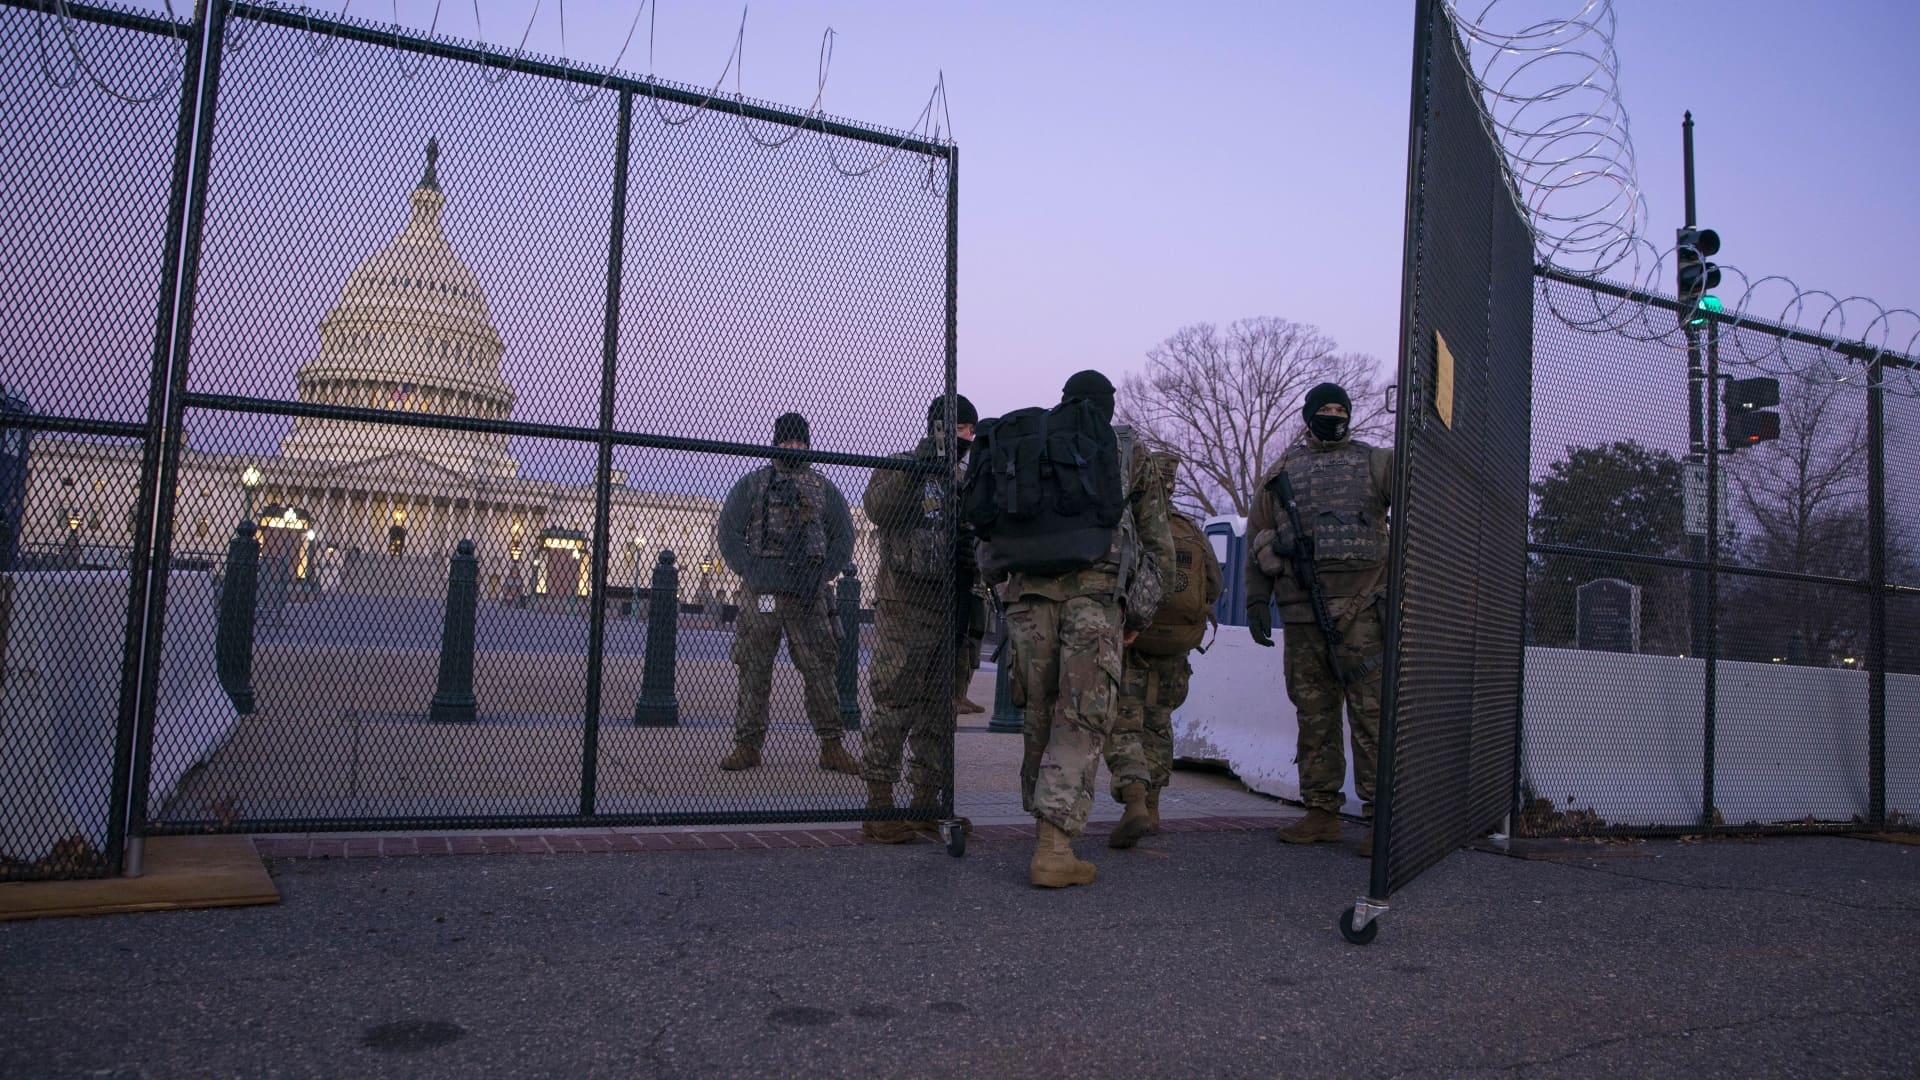 Members of the National Guard enter a gate of barbed wire fencing on U.S. Capitol grounds at sunrise on February 8, 2021 in Washington, DC. The Senate is scheduled to begin the second impeachment trial of former U.S. President Donald J. Trump on February 9.